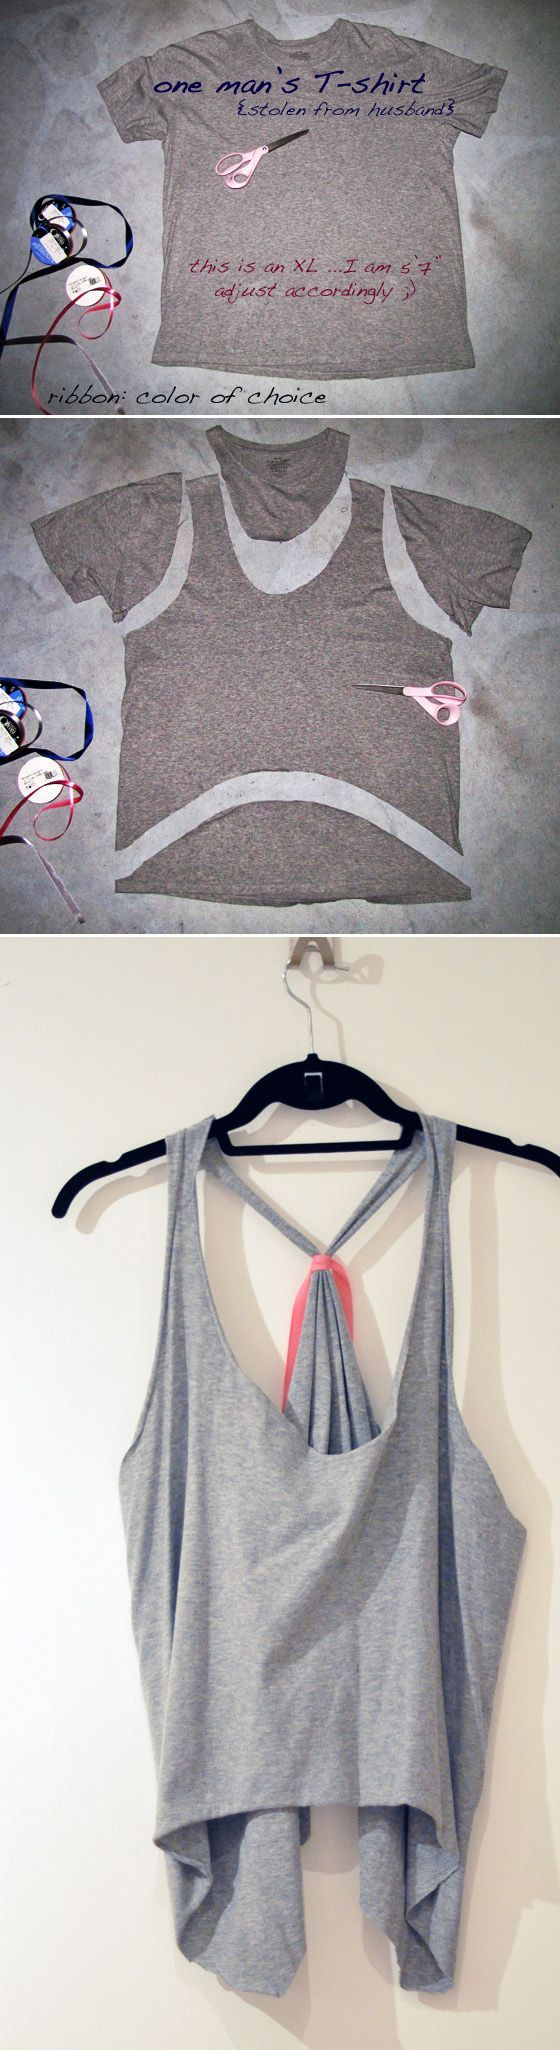 31 T-Shirt DIYs That Are Perfect For Summer - BuzzFeed Mobile